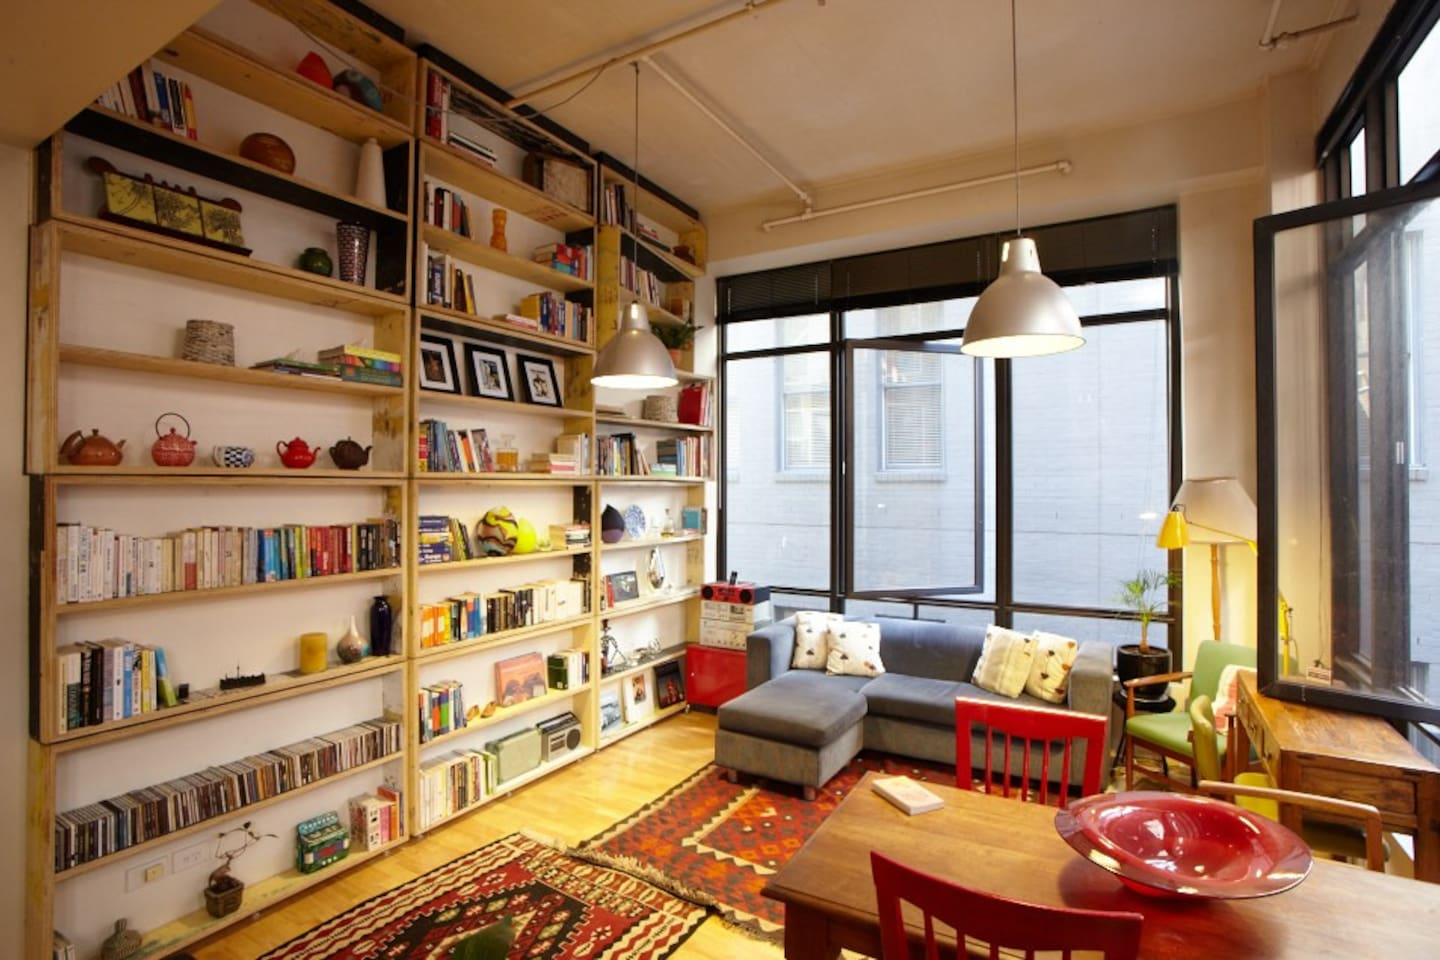 Check out the cool rotating library recently featured in the LA Times! Check the next photo...